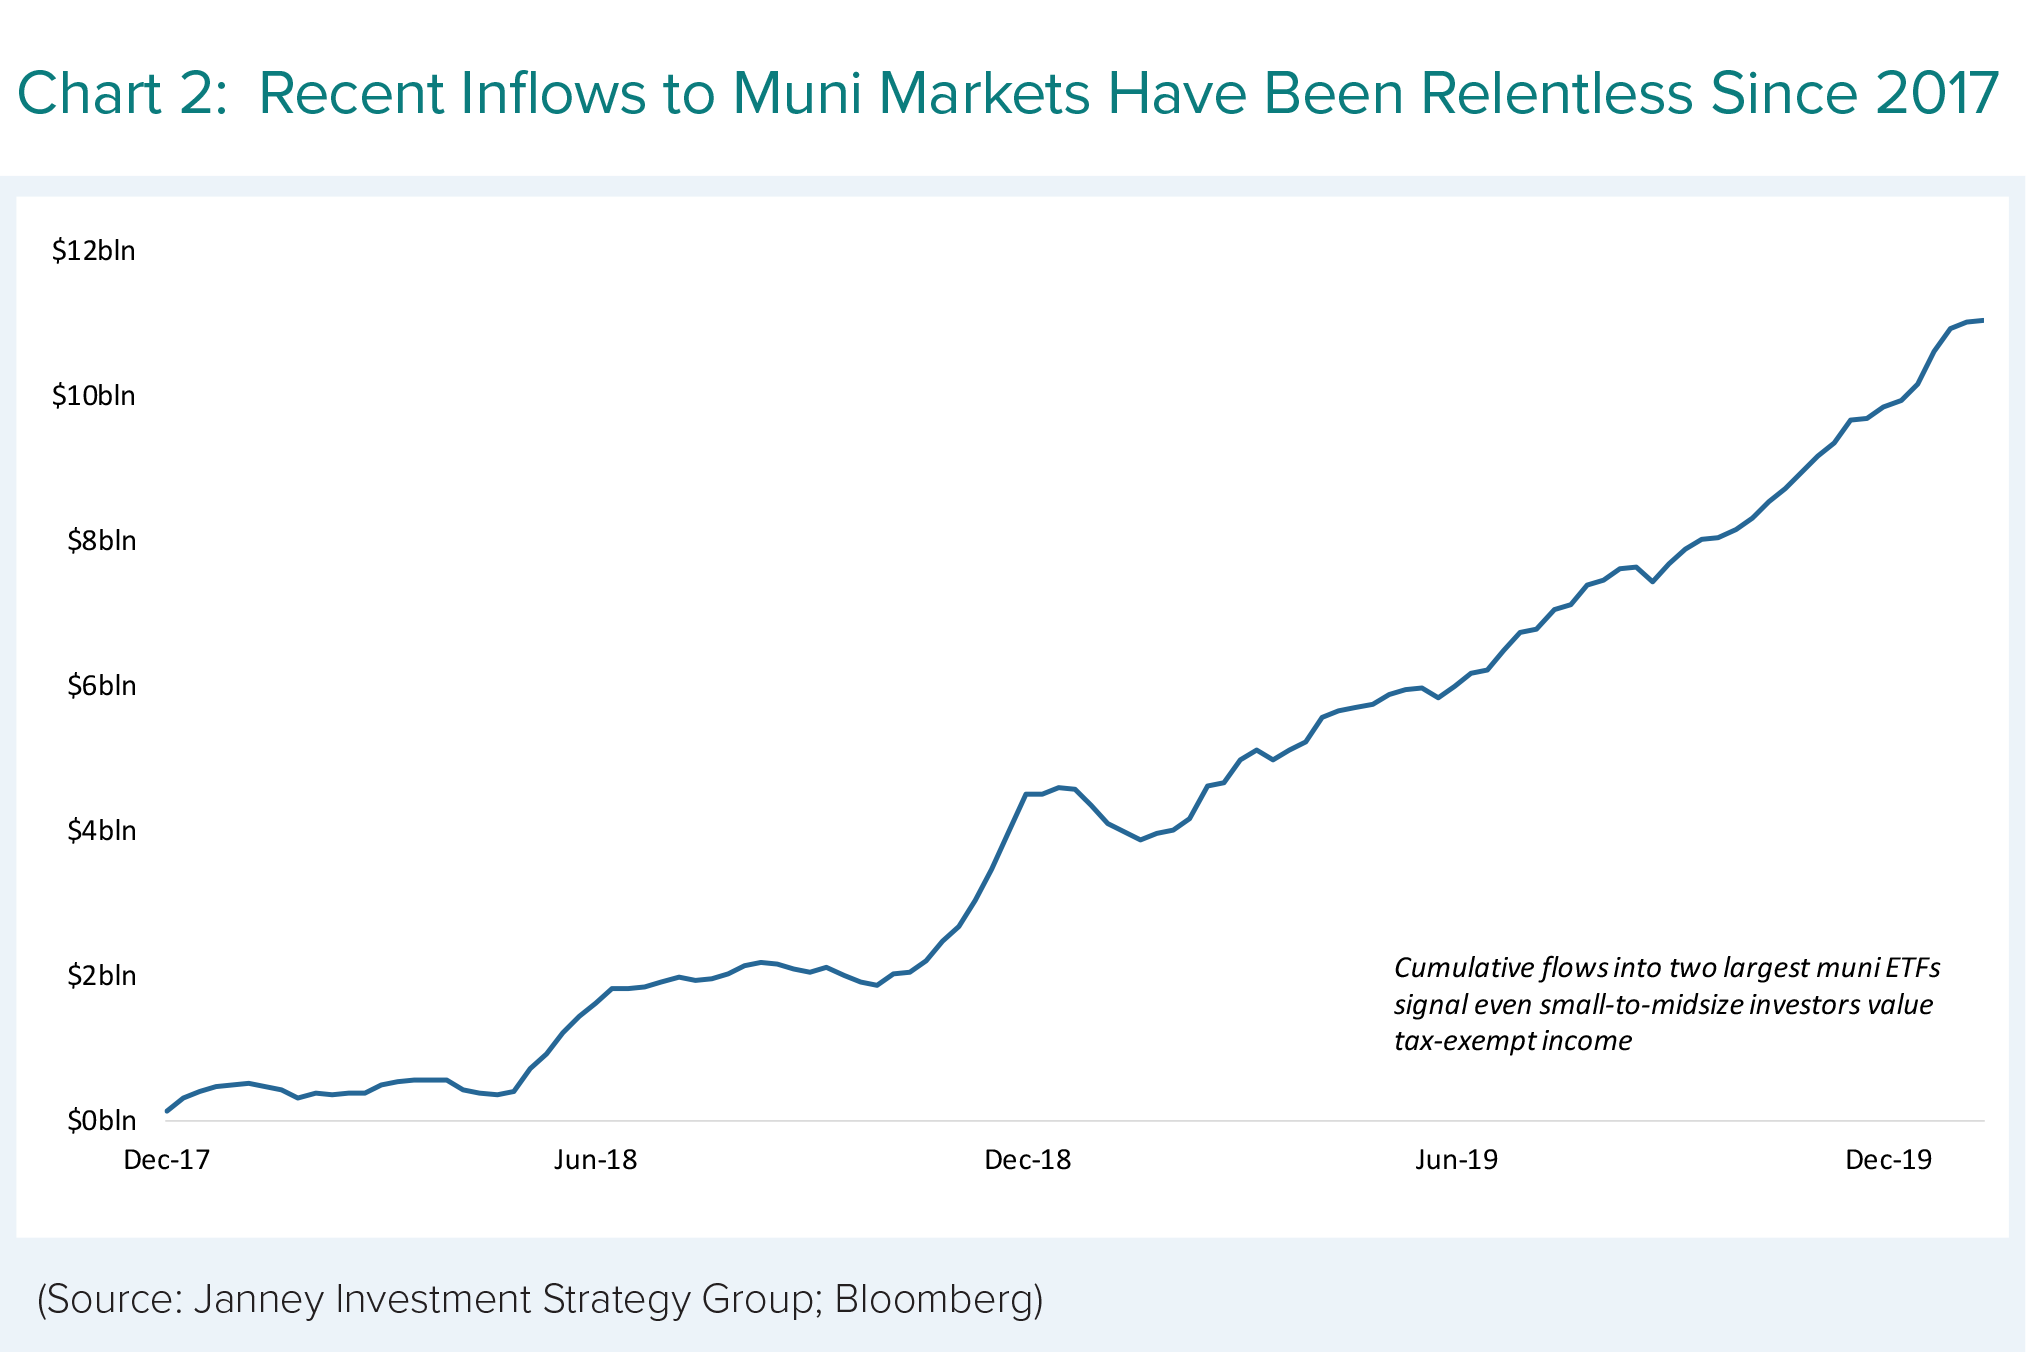 Recent Inflows to Muni Markets Have Been Relentless Since 2017